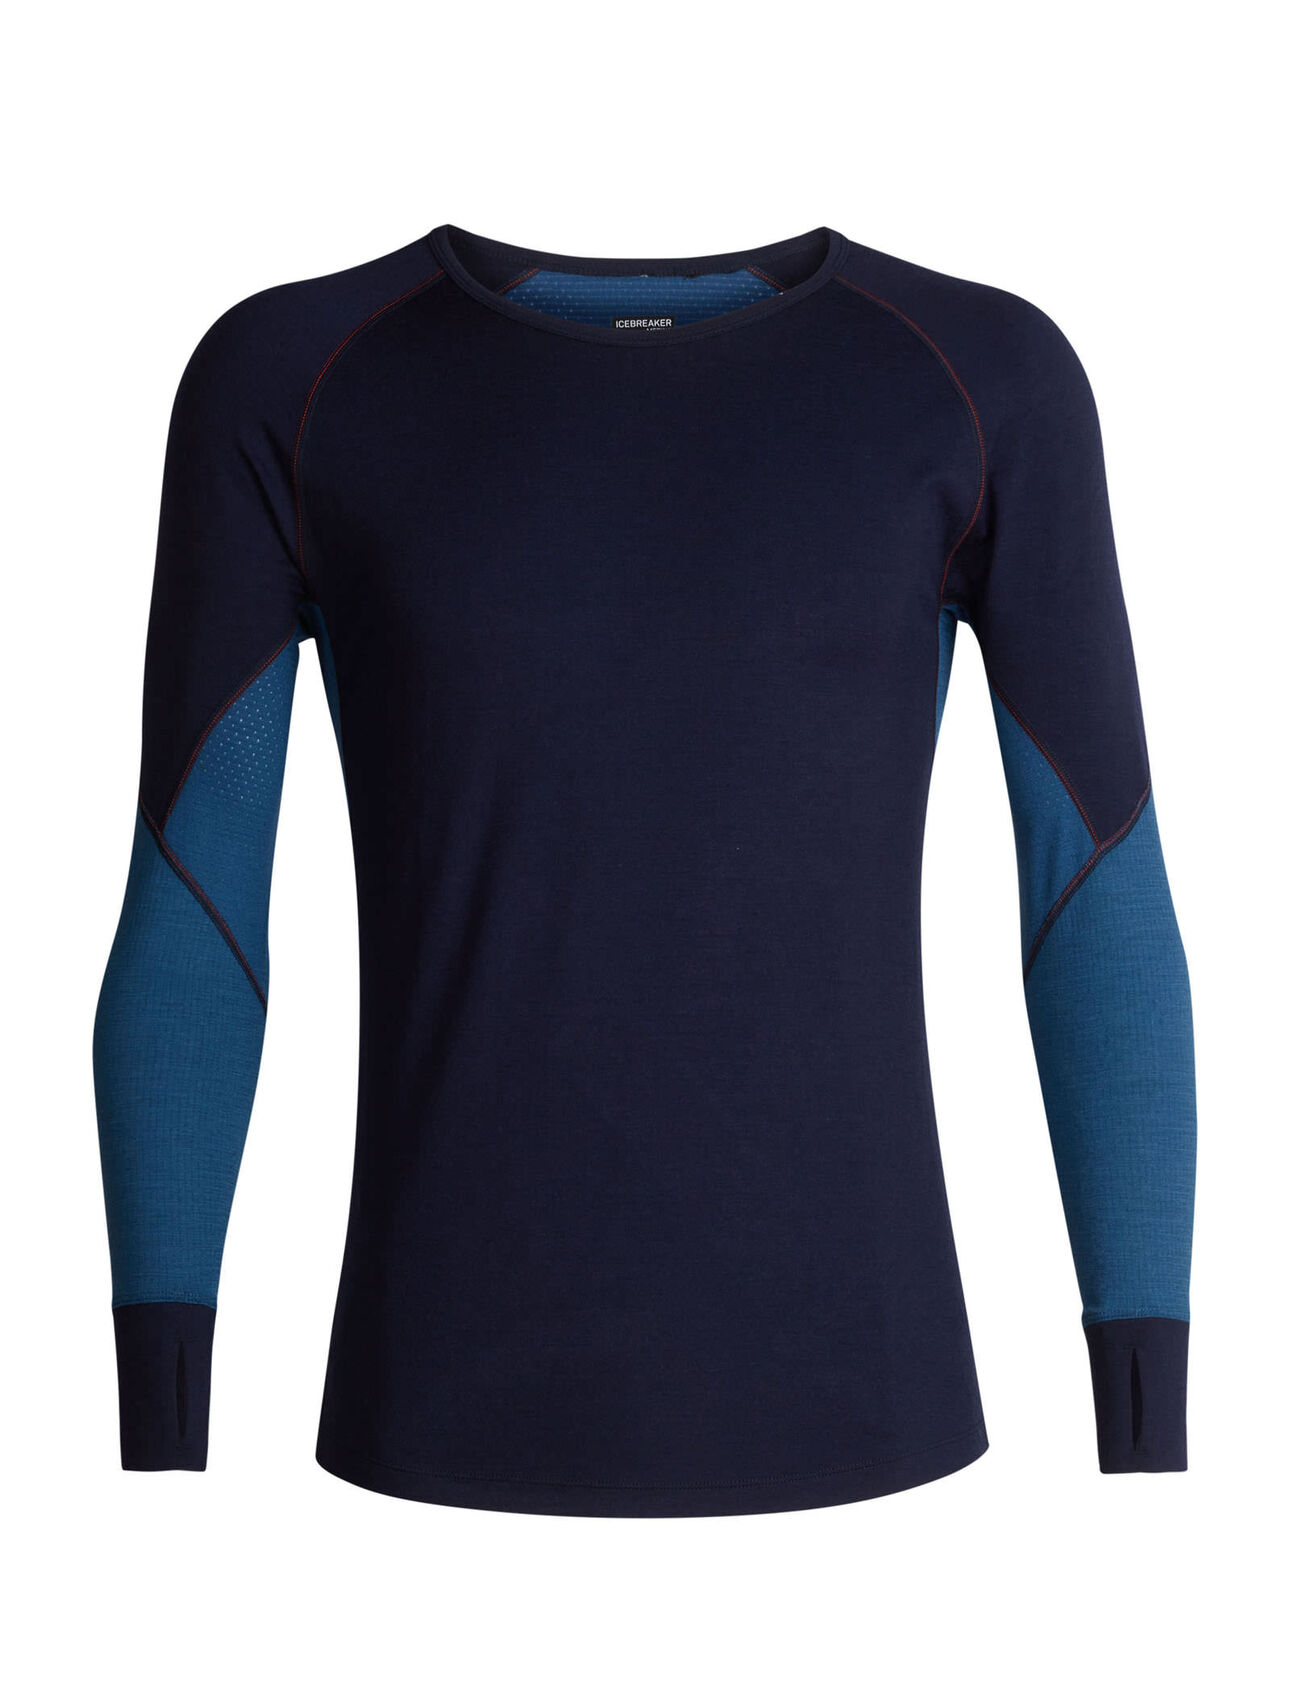 a50bb68cc BodyfitZONE™ 260 Zone Long Sleeve Crewe - Icebreaker (US)